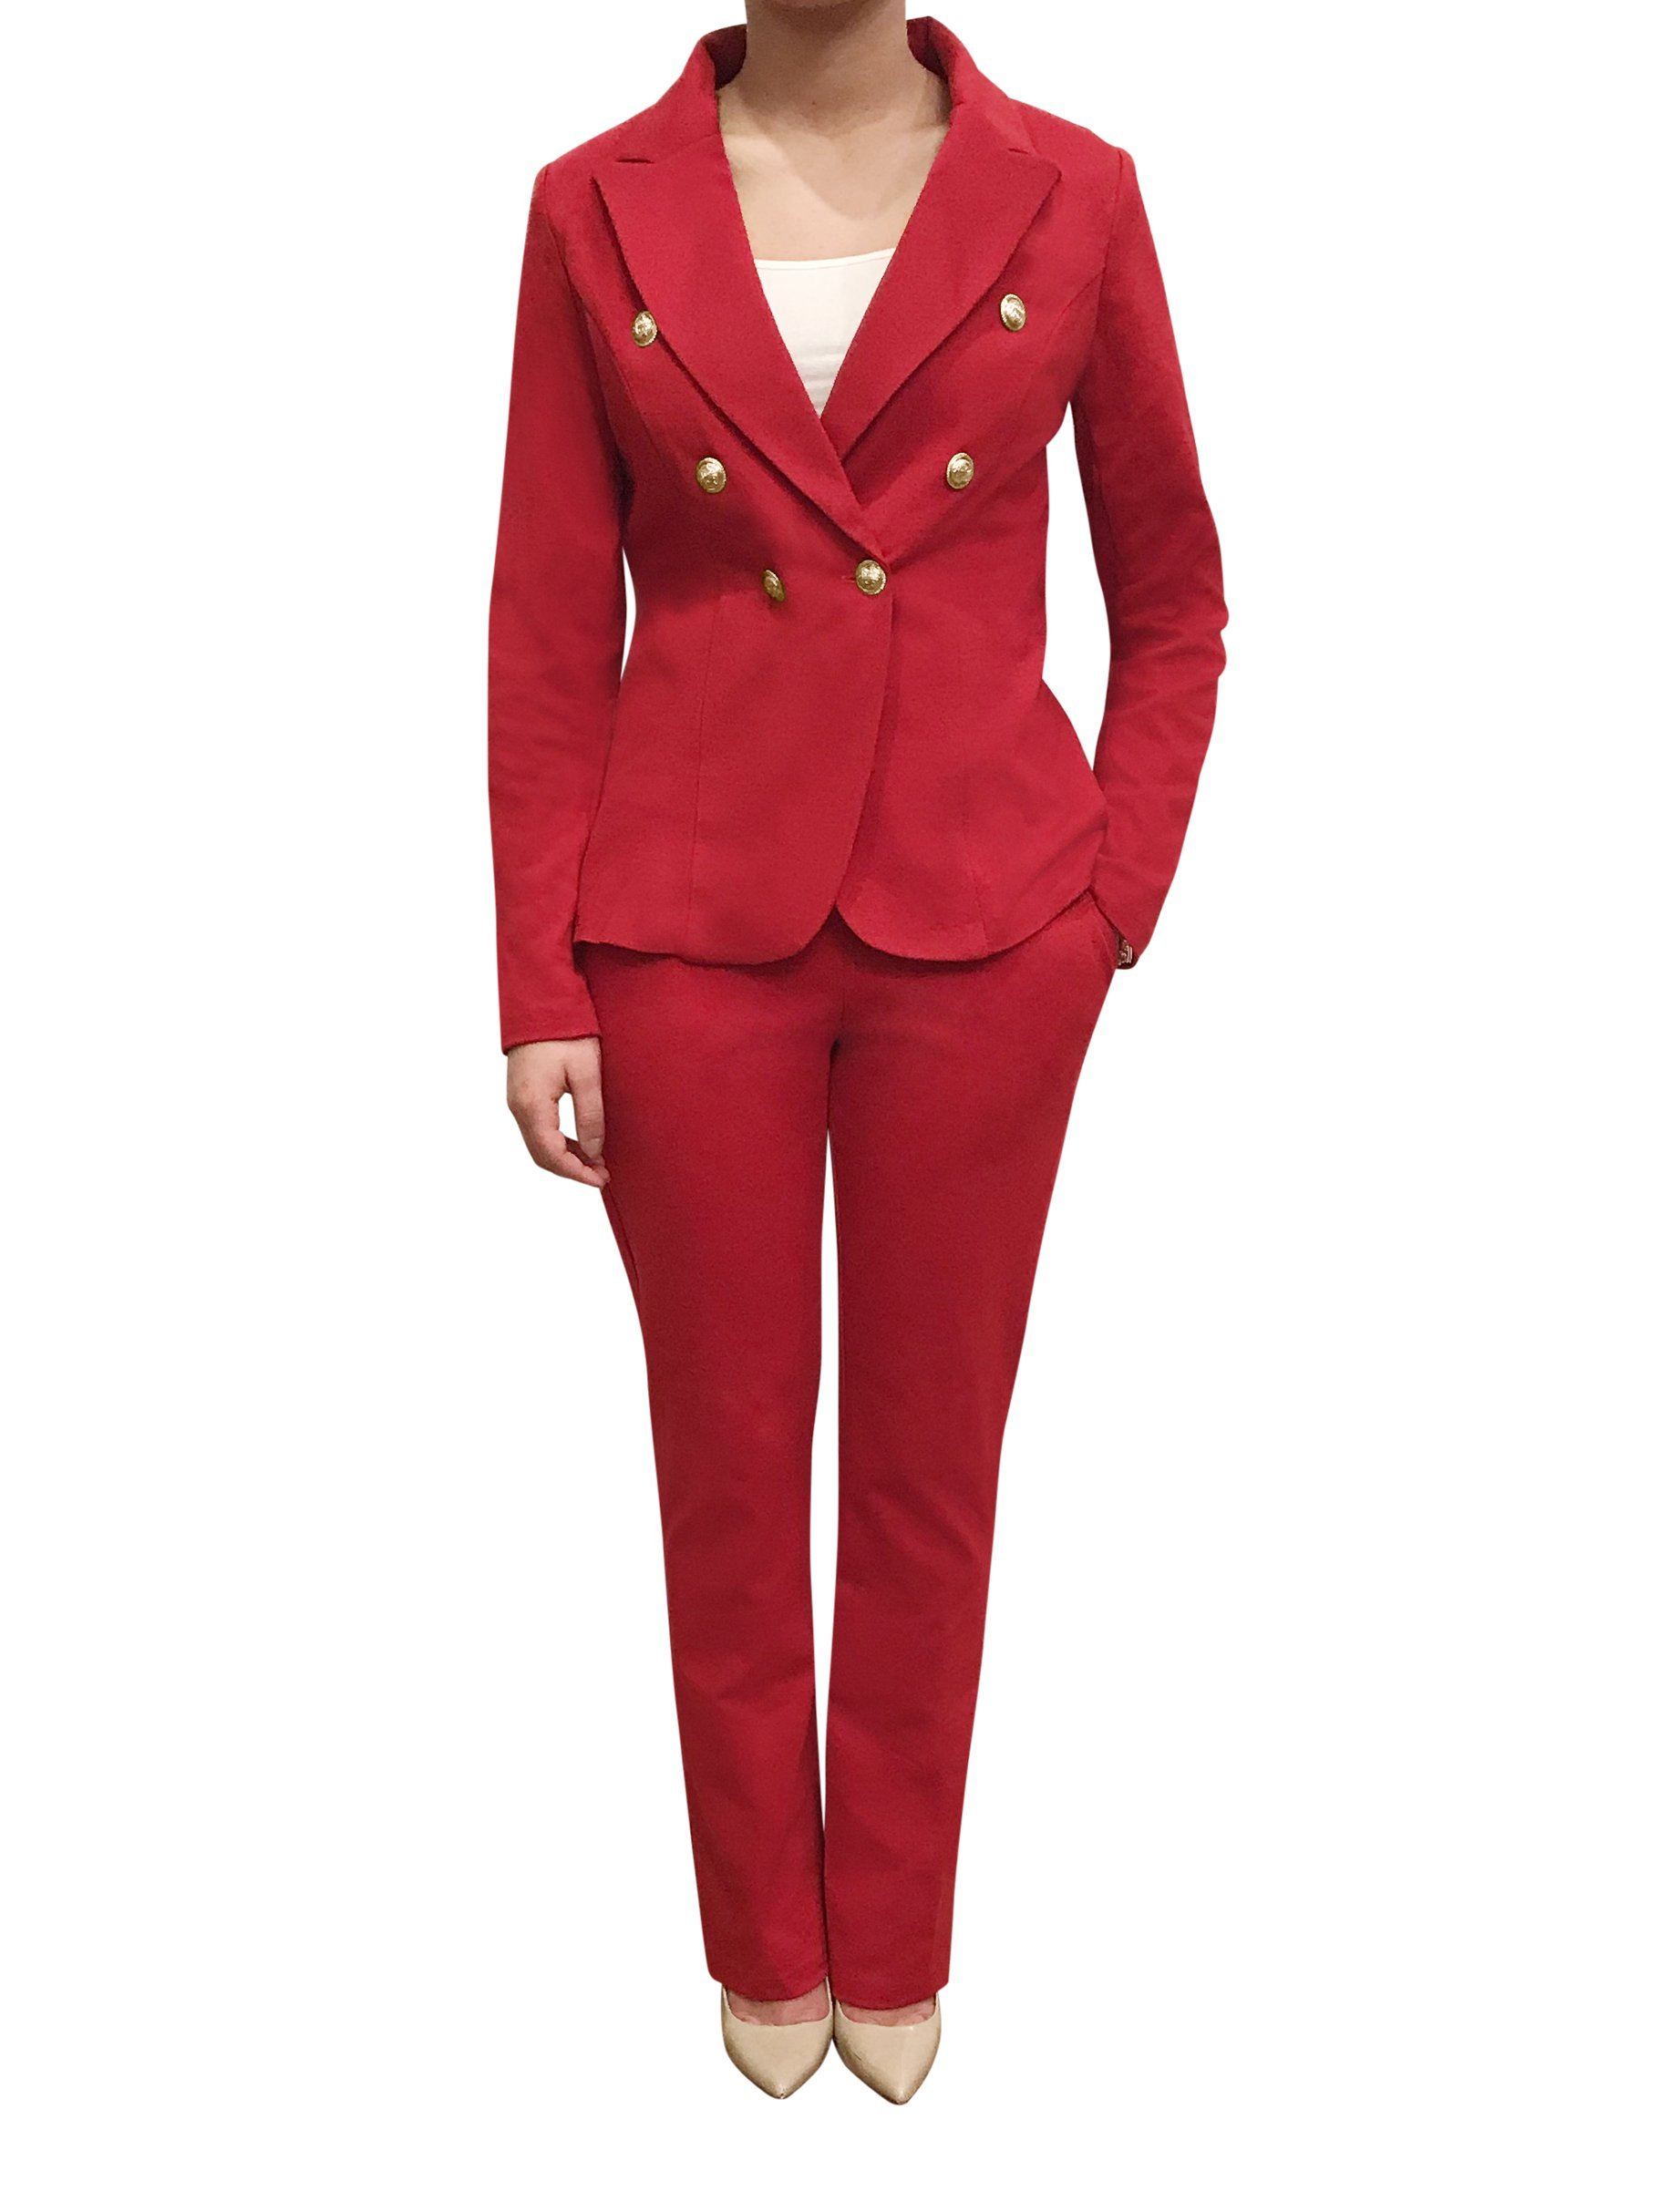 OrlyCollection Womens Double Breasted Gold Button Front Blazer Jacket(Red,Large)